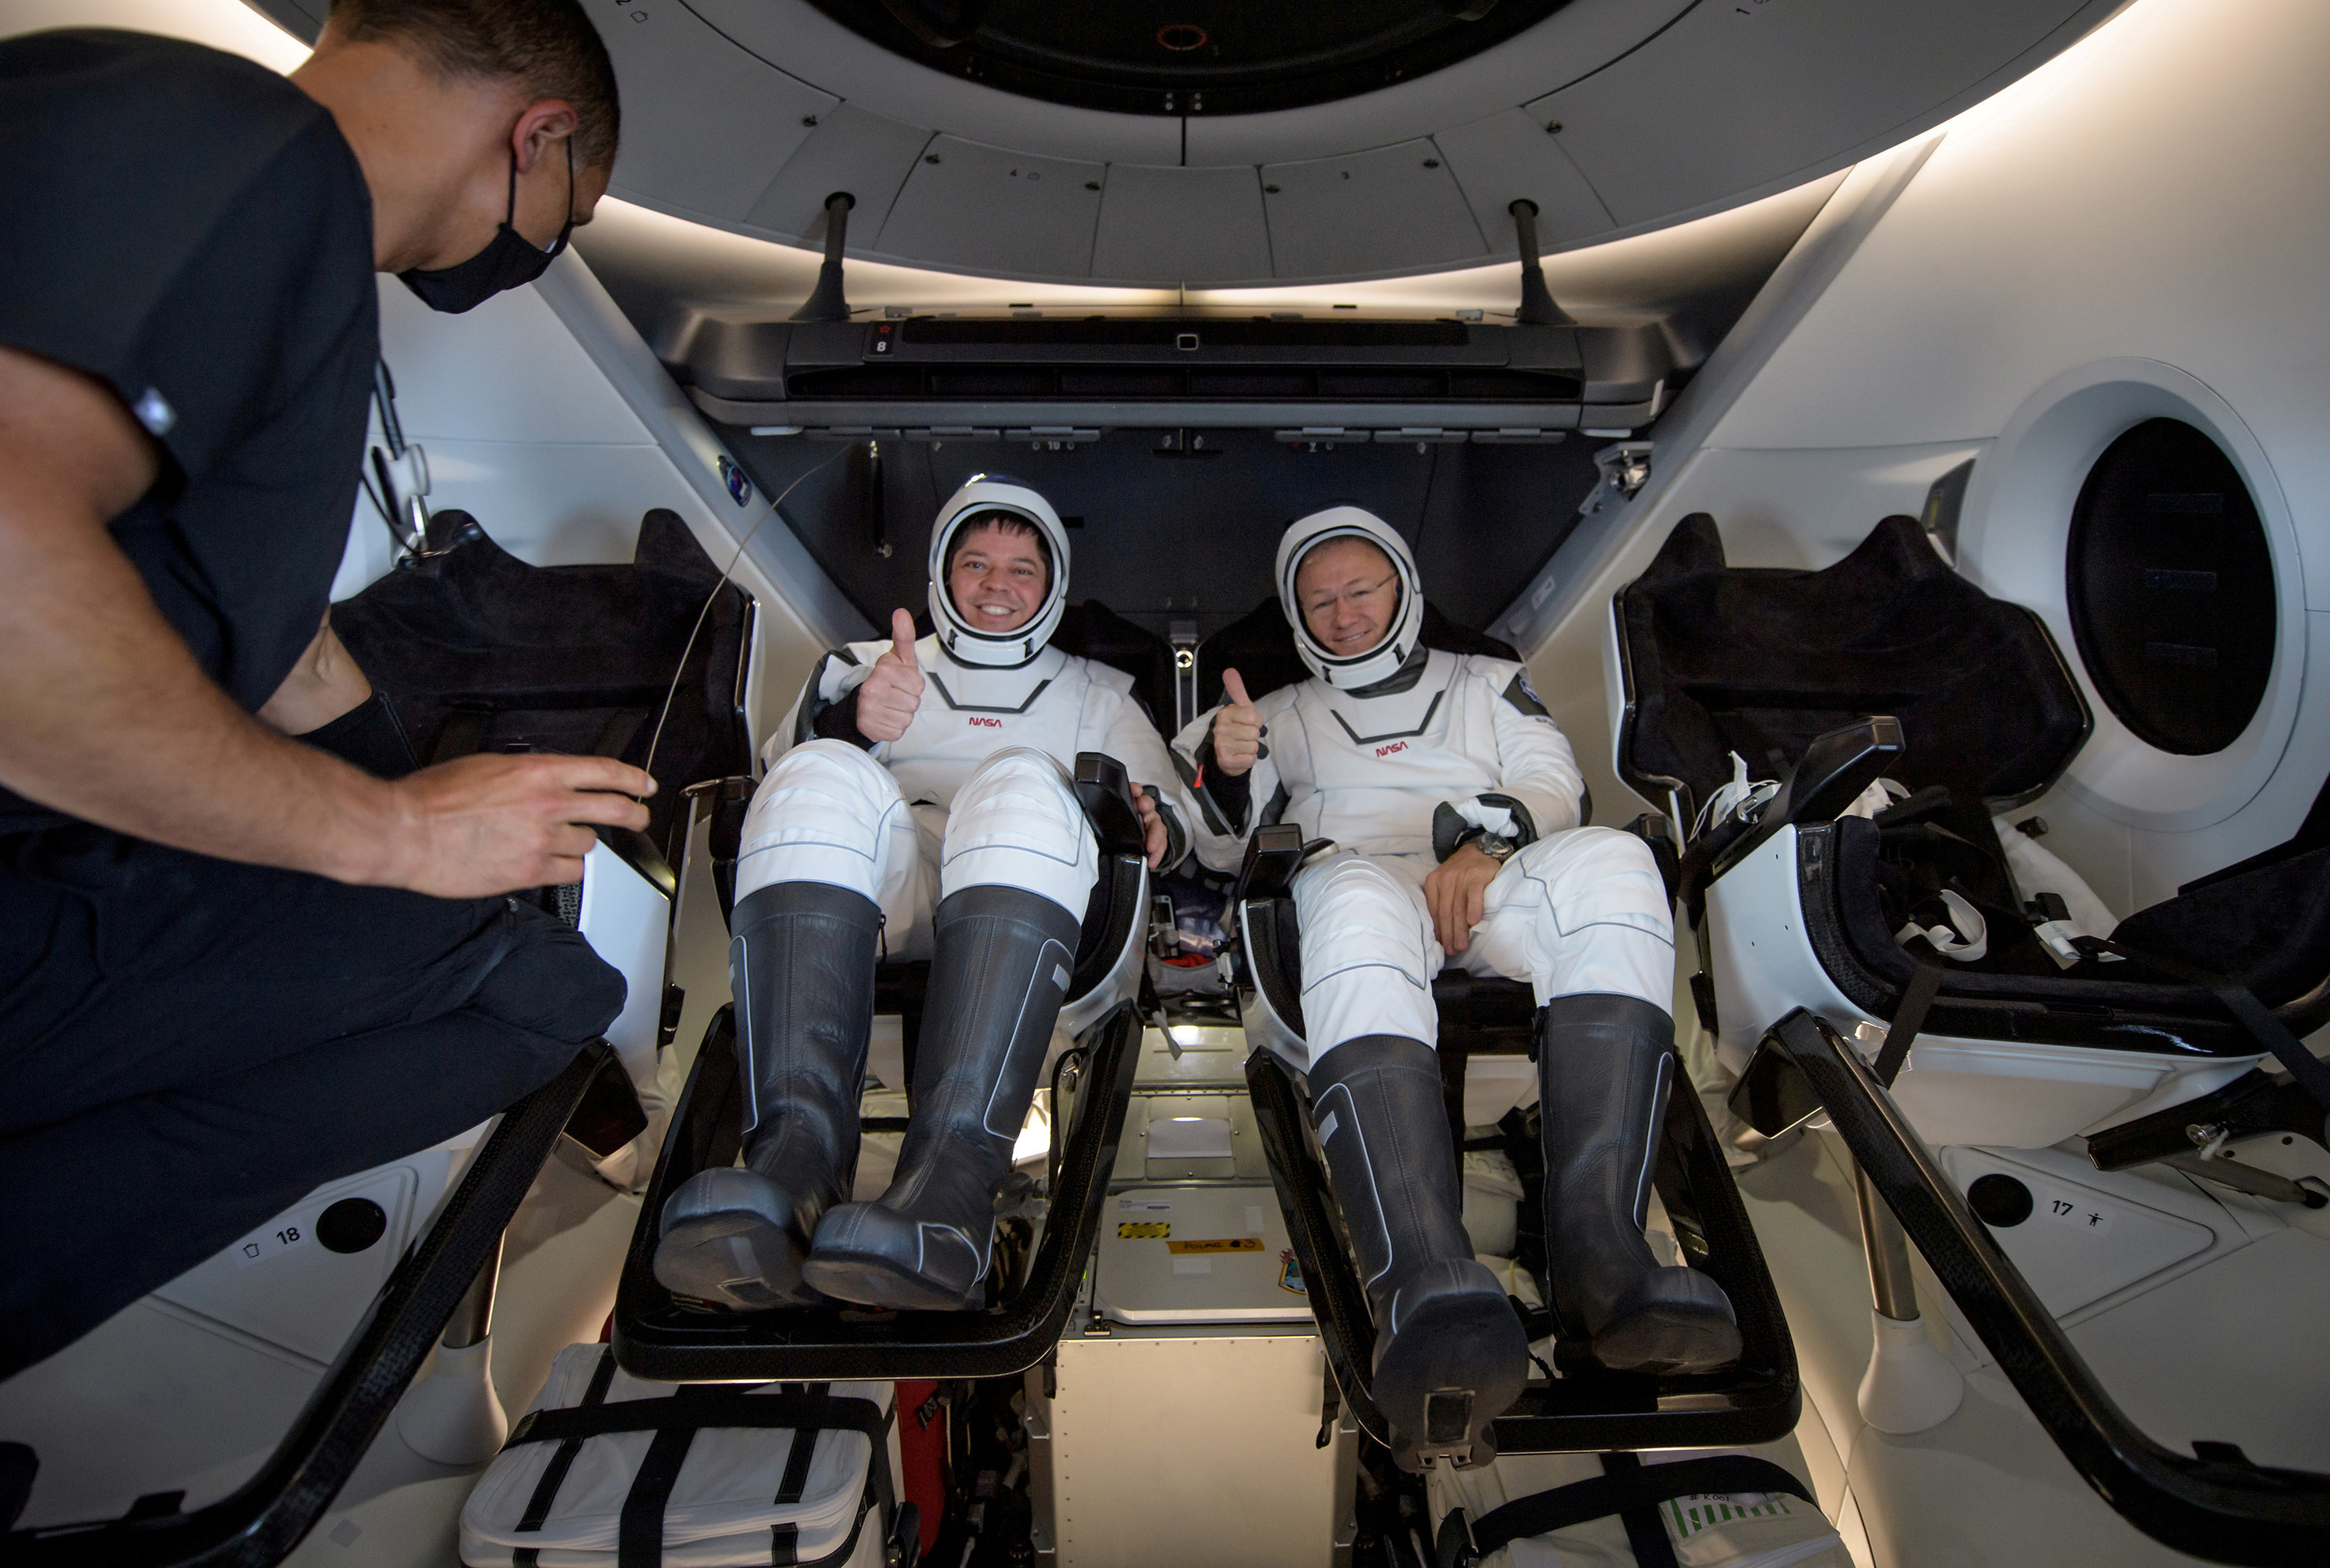 two astronaughts in a spca capsule smile and give the thumbs up while another man enters the space capsule